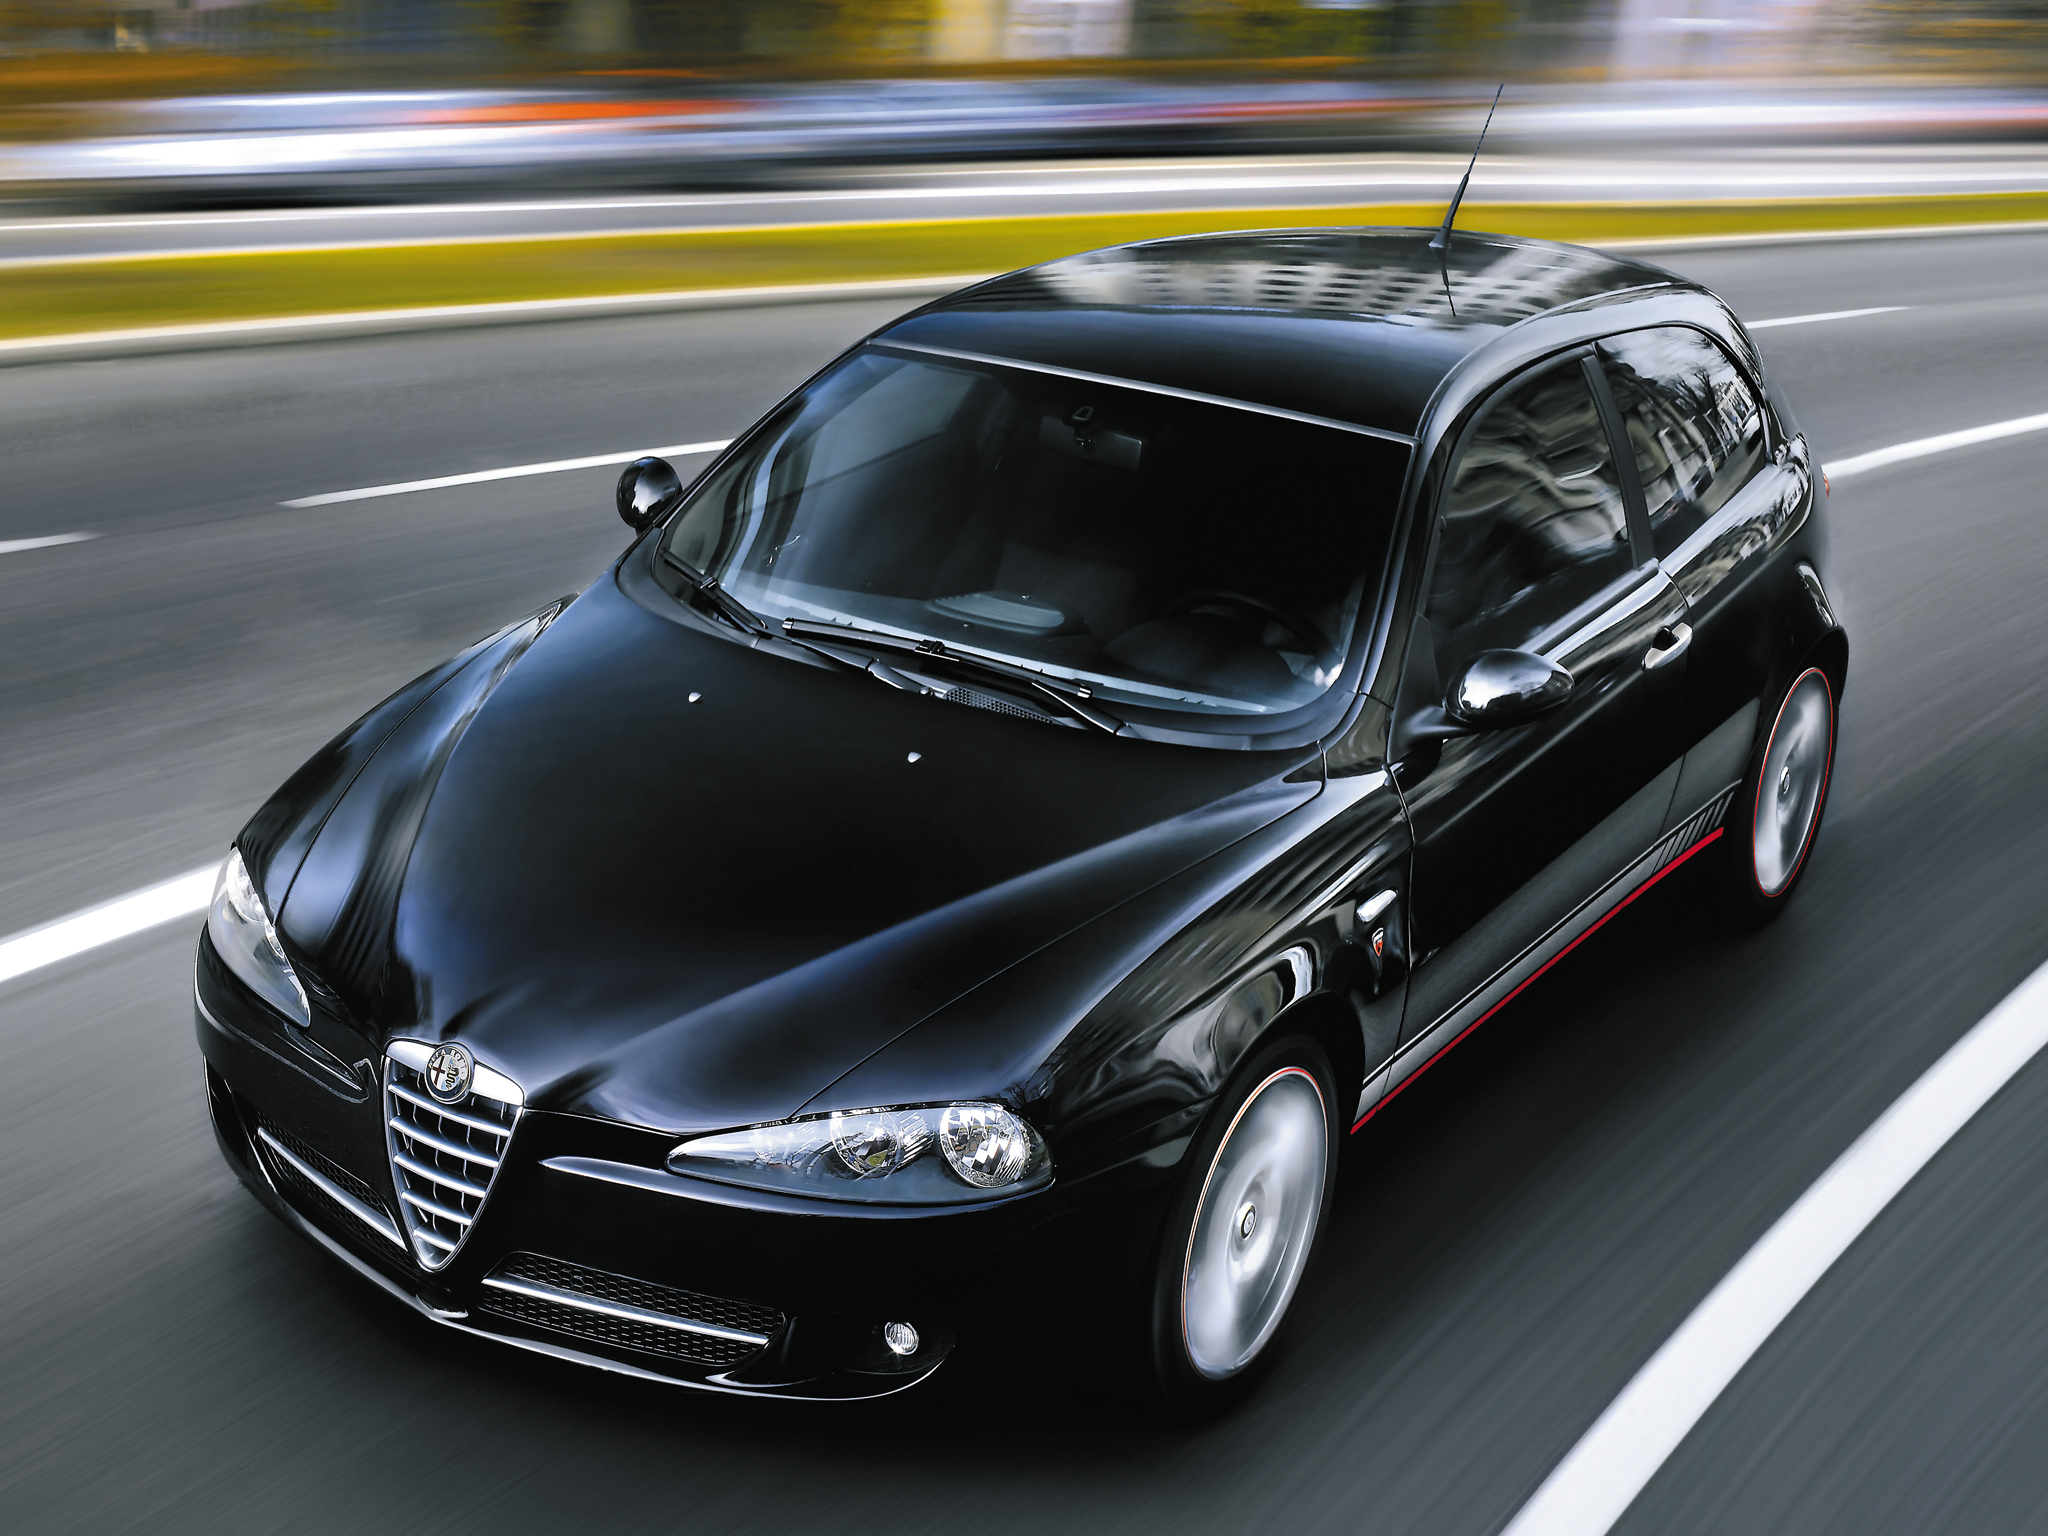 2048x1536 - Alfa Romeo 147 Wallpapers 1